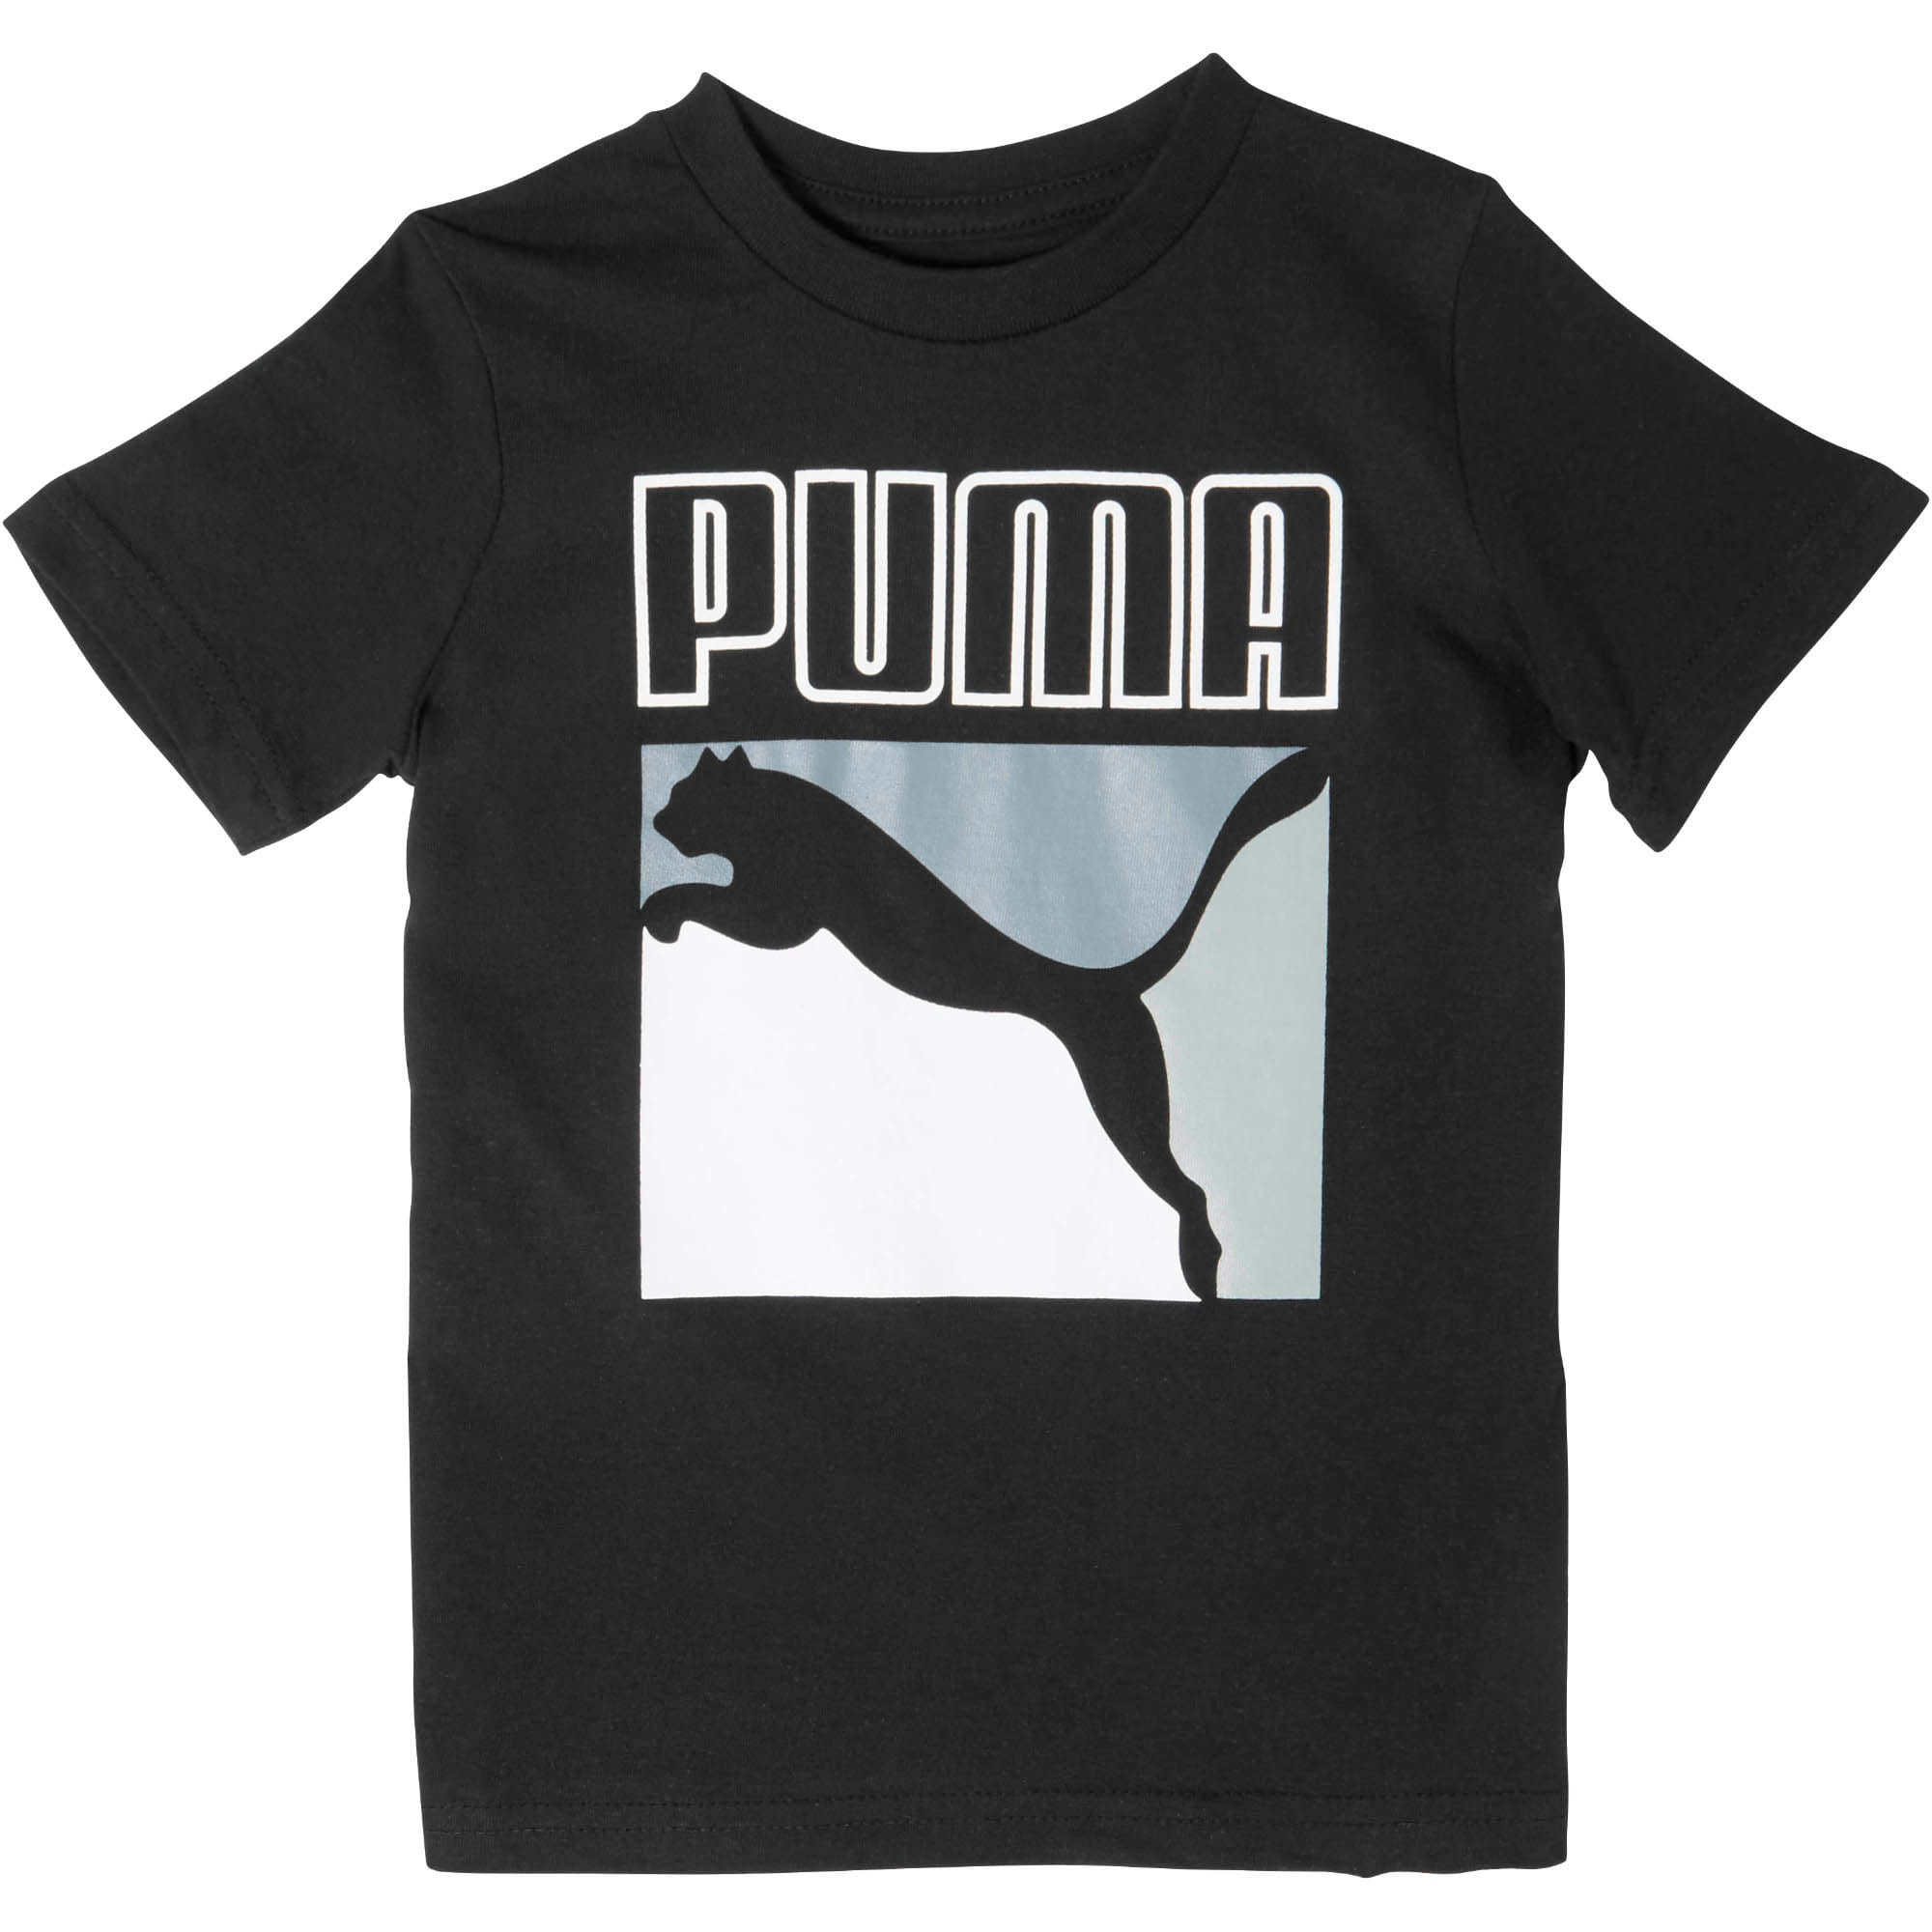 Thumbnail 1 of Little Kids' Graphic Tee, PUMA BLACK, medium